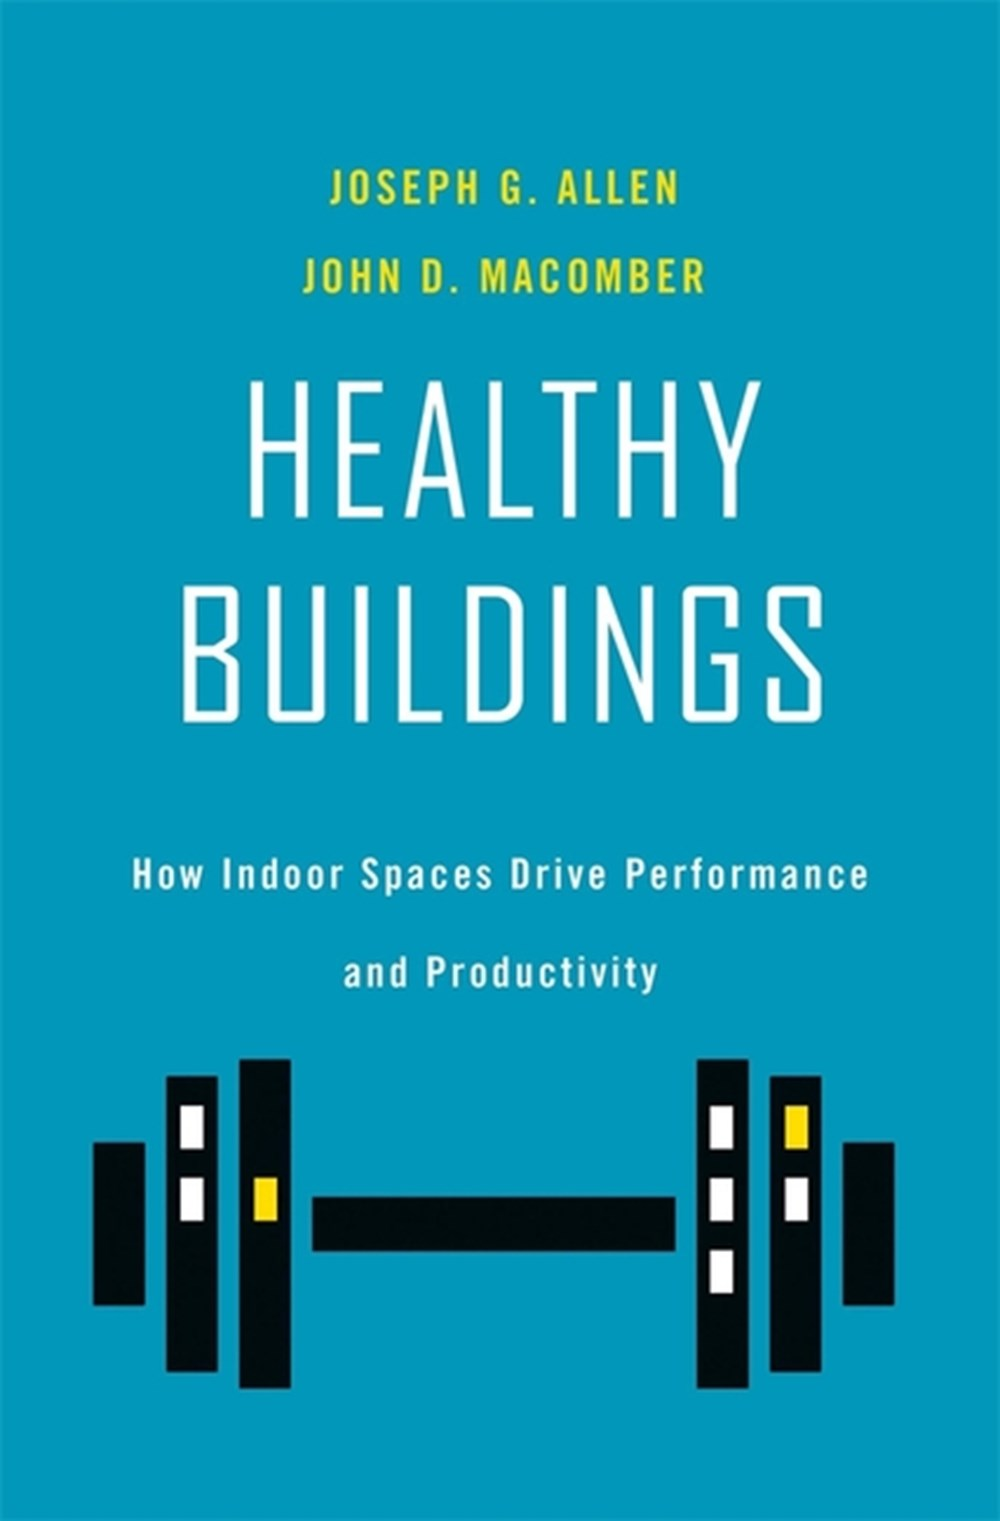 Healthy Buildings How Indoor Spaces Drive Performance and Productivity